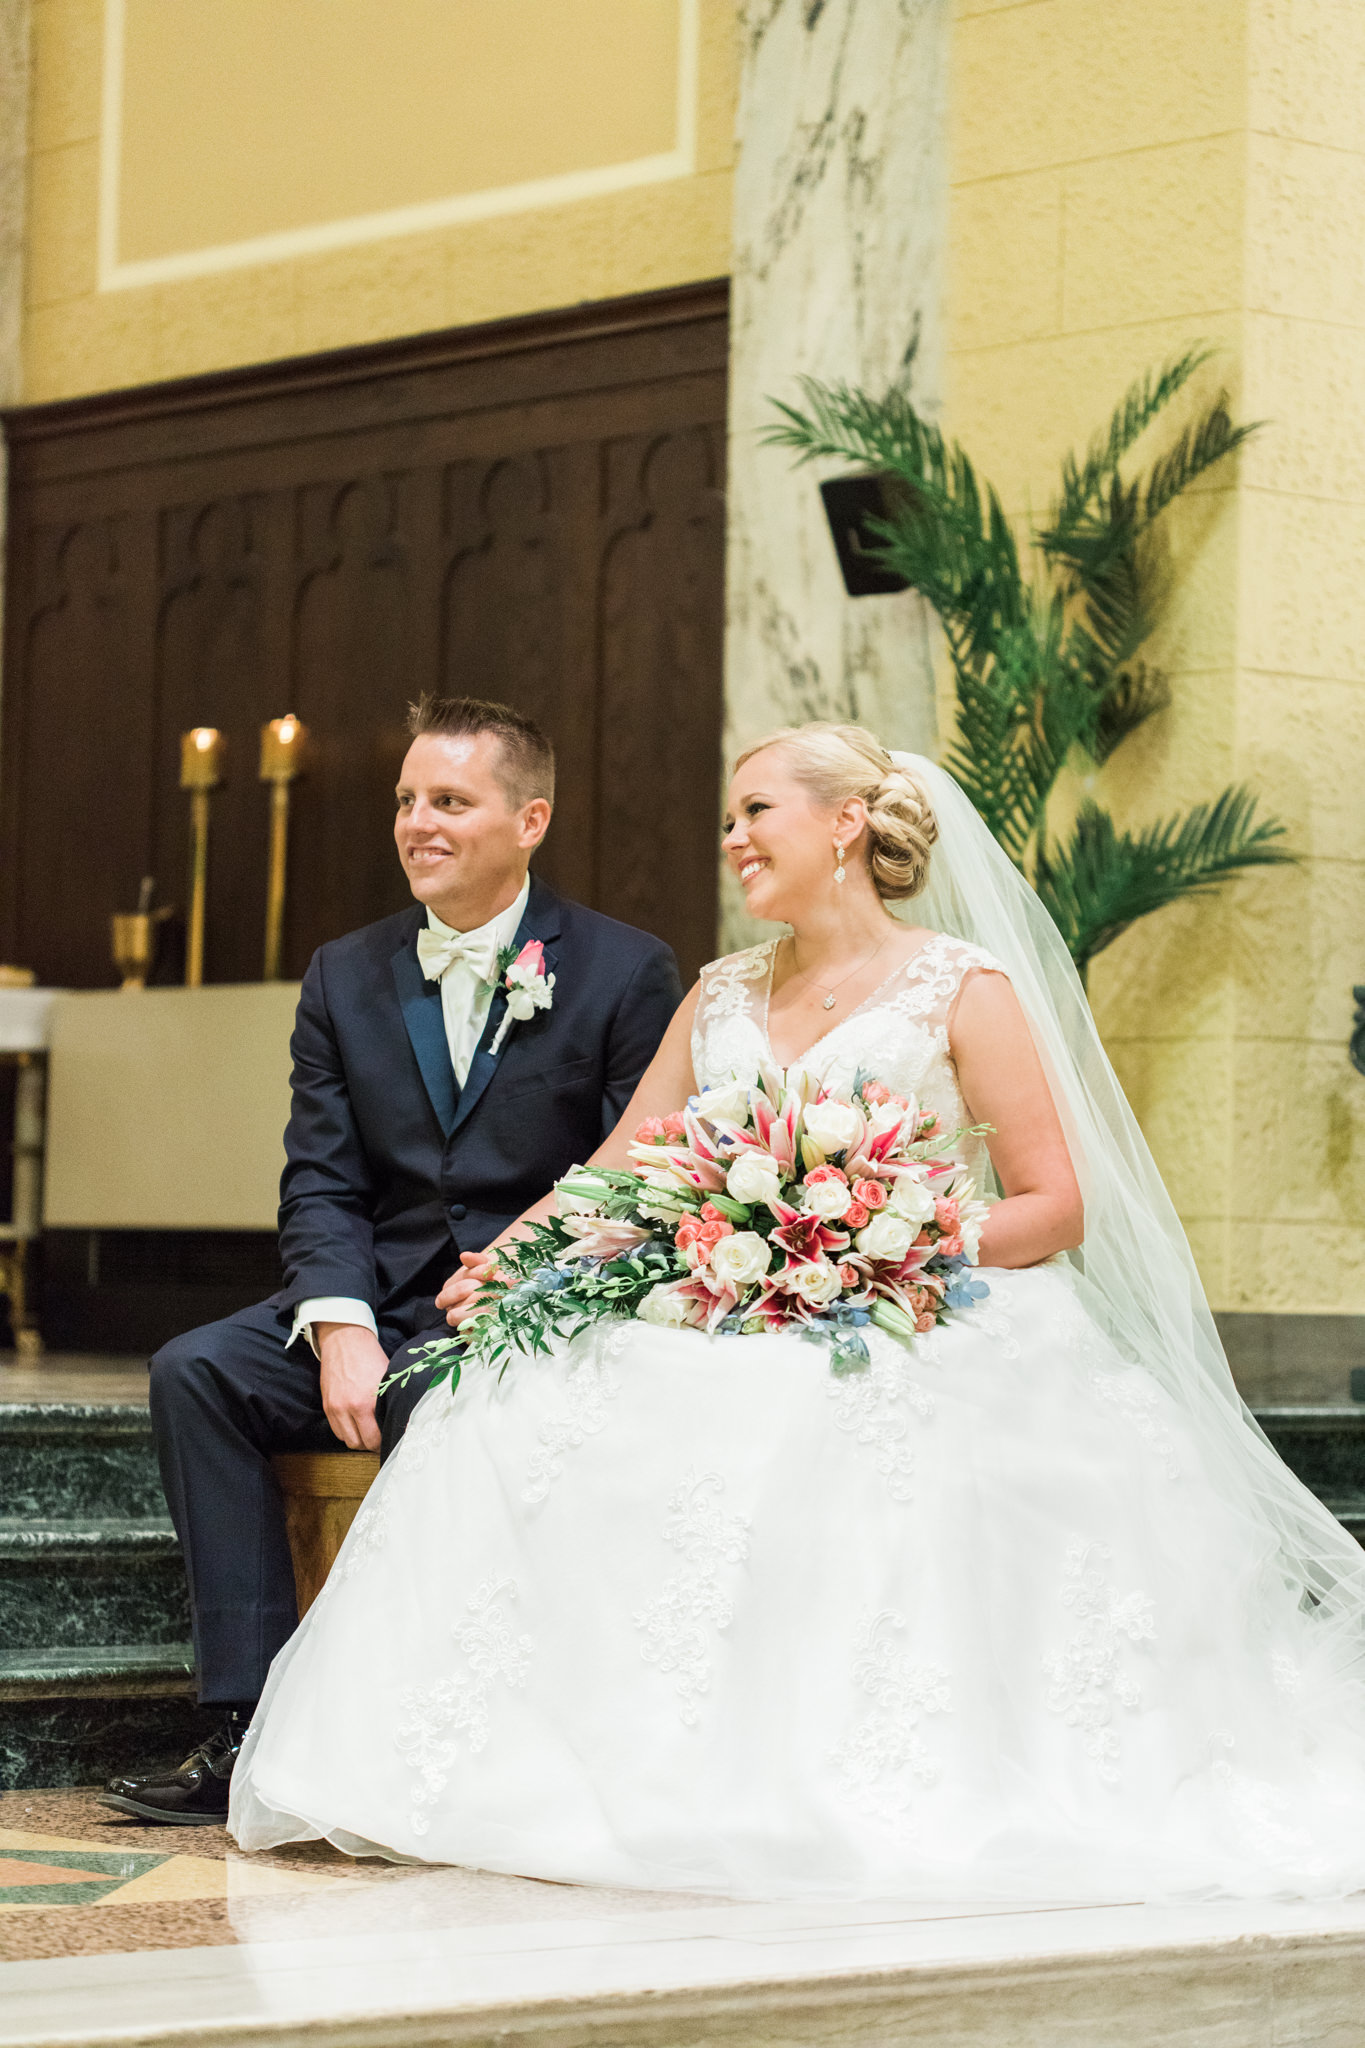 Bride and Groom sitting at their wedding at St. Agnes Catholic Church in Louisville Ky.